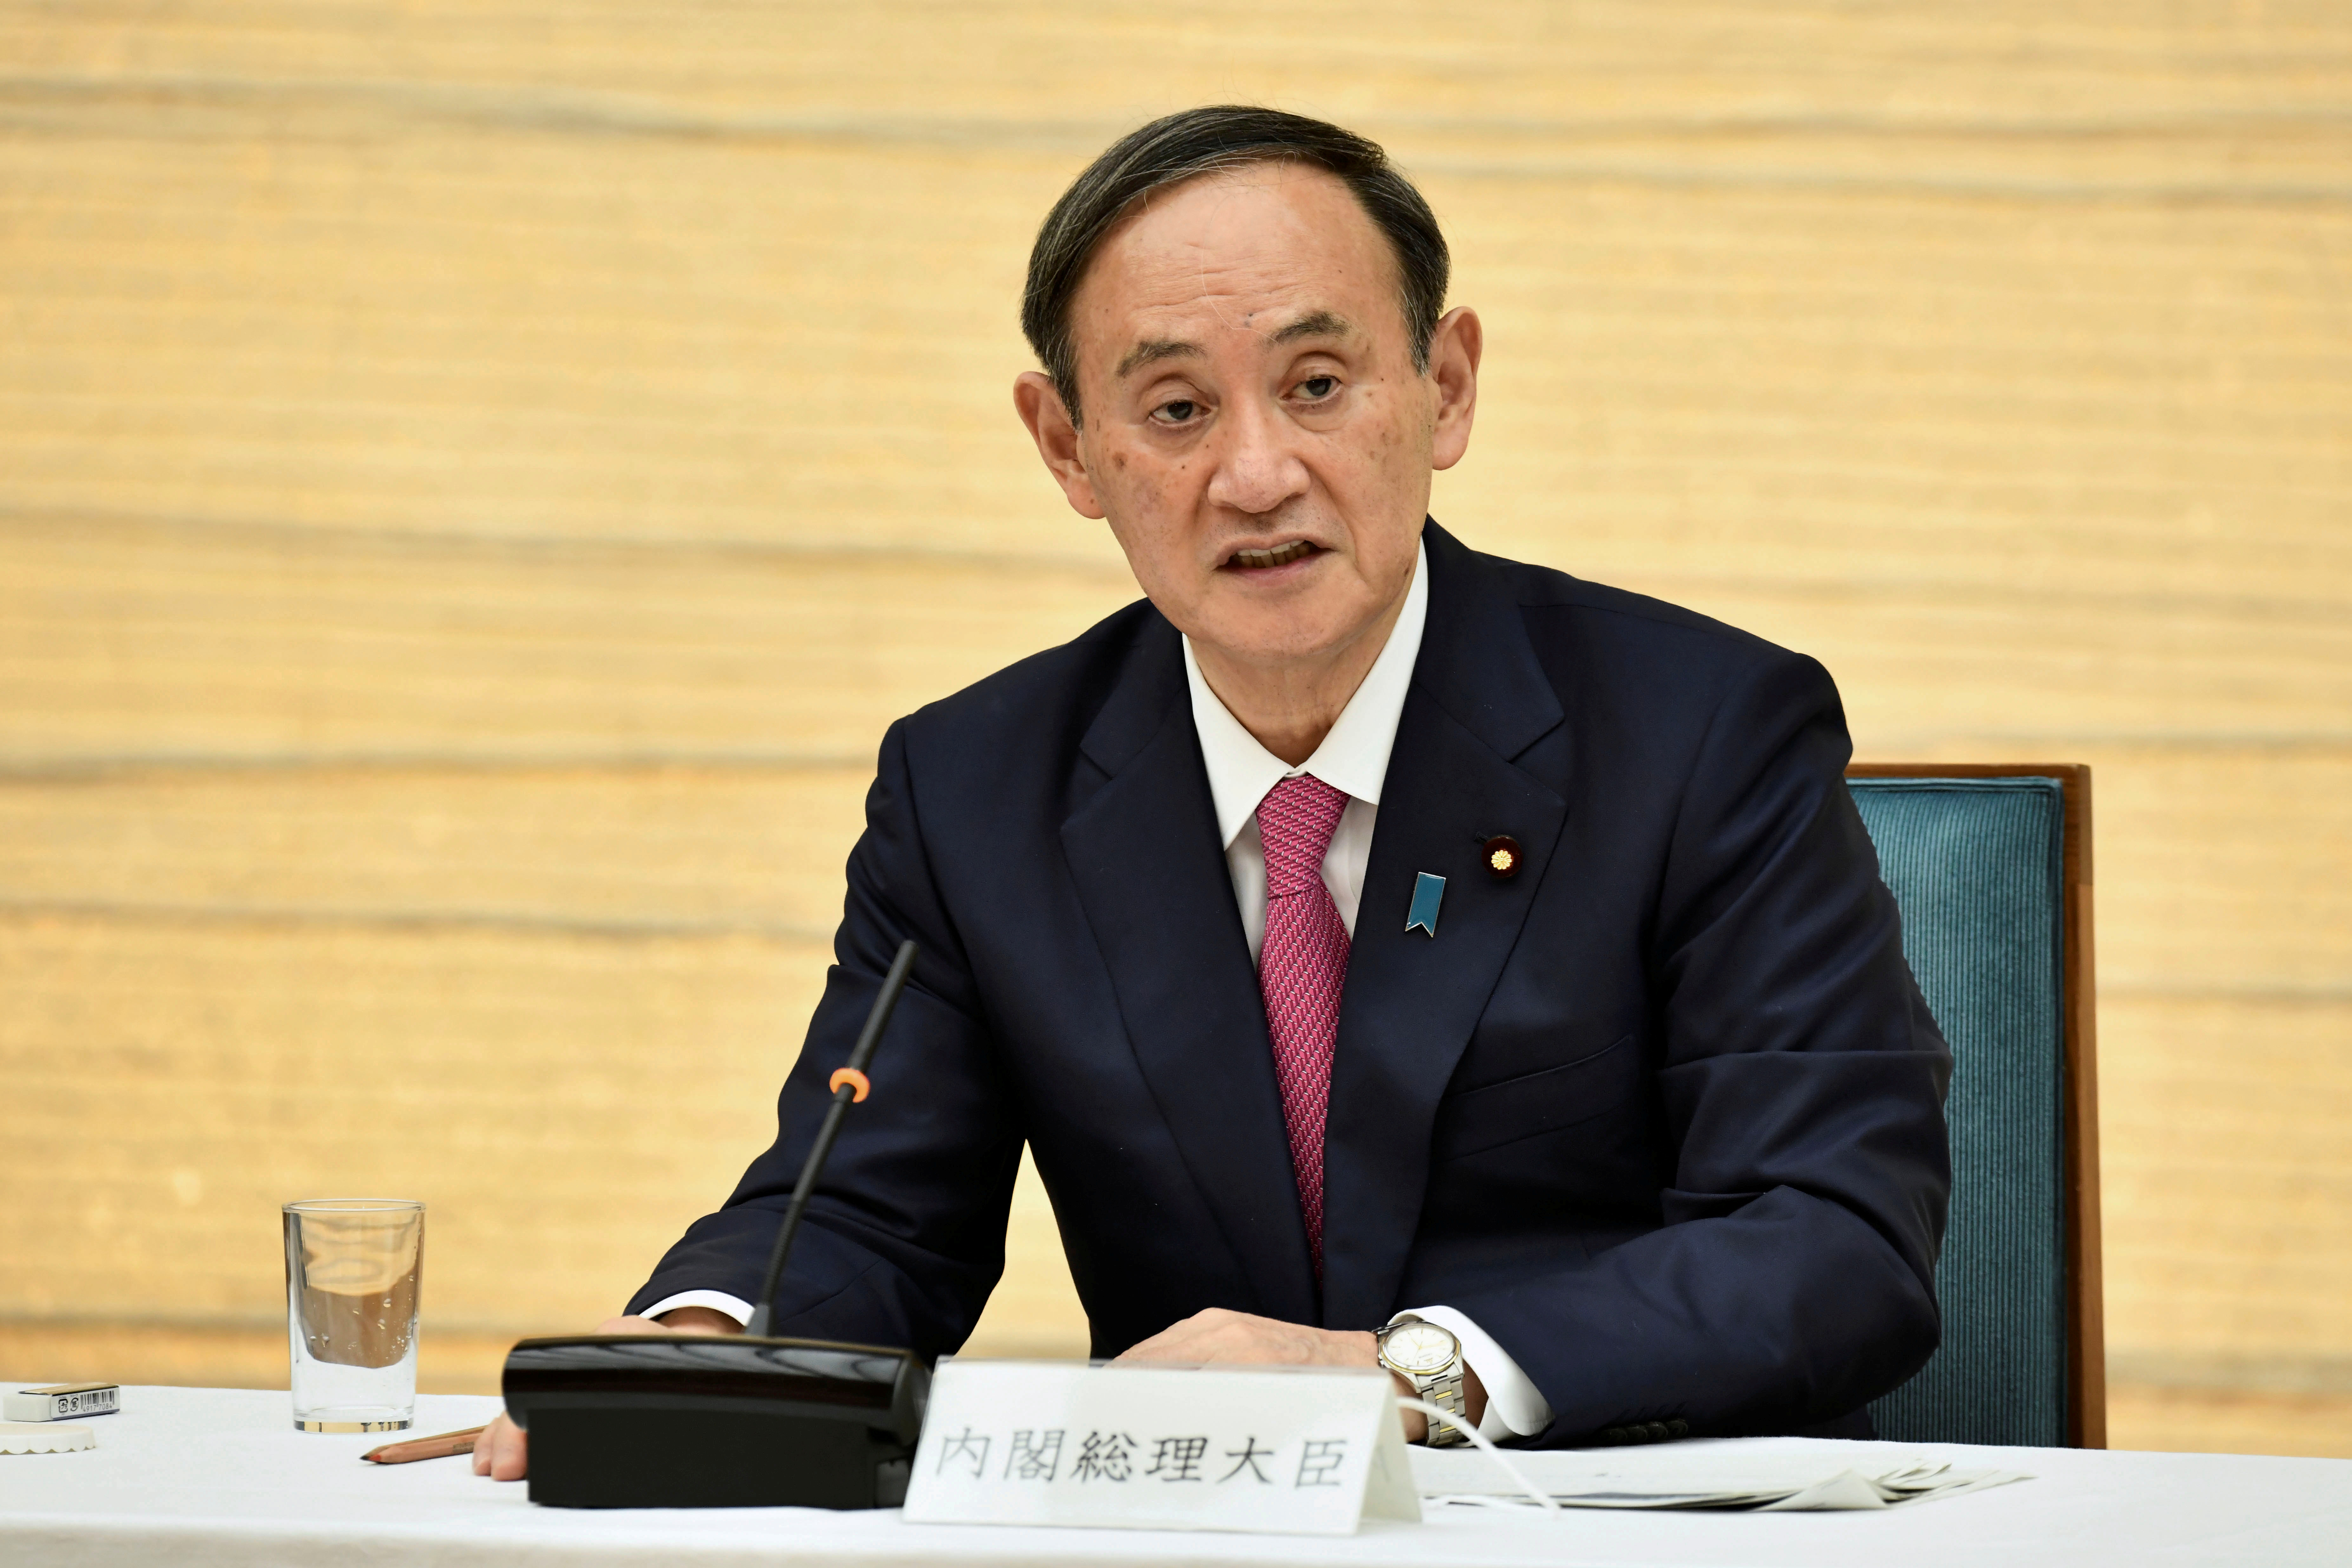 Japanese Prime Minister Yoshihide Suga speaks during a meeting of the coronavirus disease (COVID-19) infection control headquarters at the prime minister's office in Tokyo, Japan January 22, 2021.  Kazuhiro Nogi/Pool via REUTERS